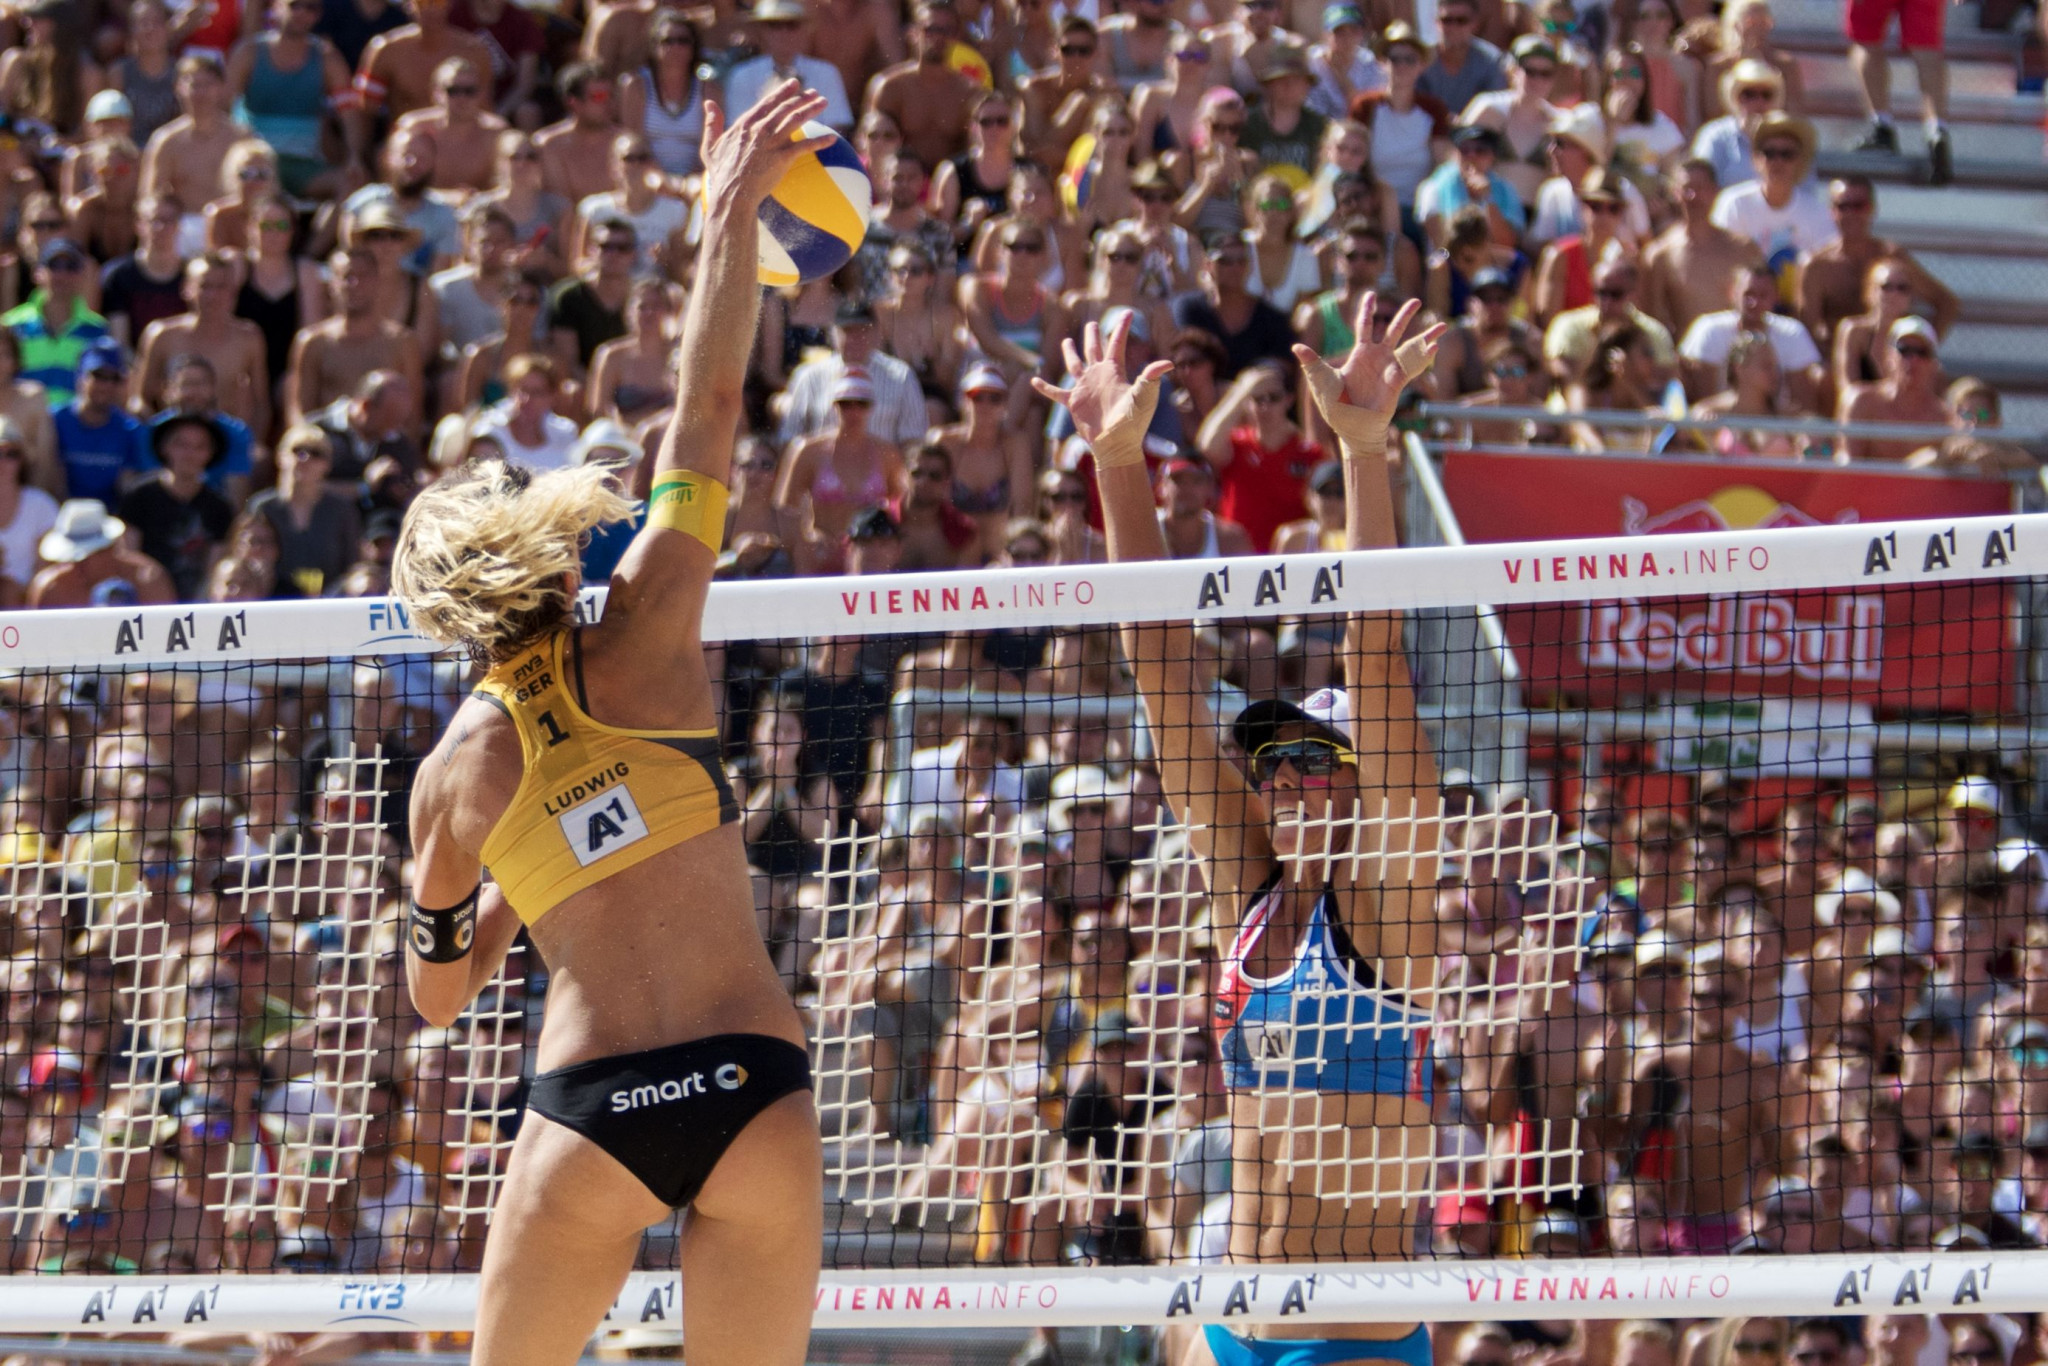 Germany's Laura Ludwig lost her first match back from a two-year break at the FIVB Beach World Tour event in Xiamen ©Getty Images